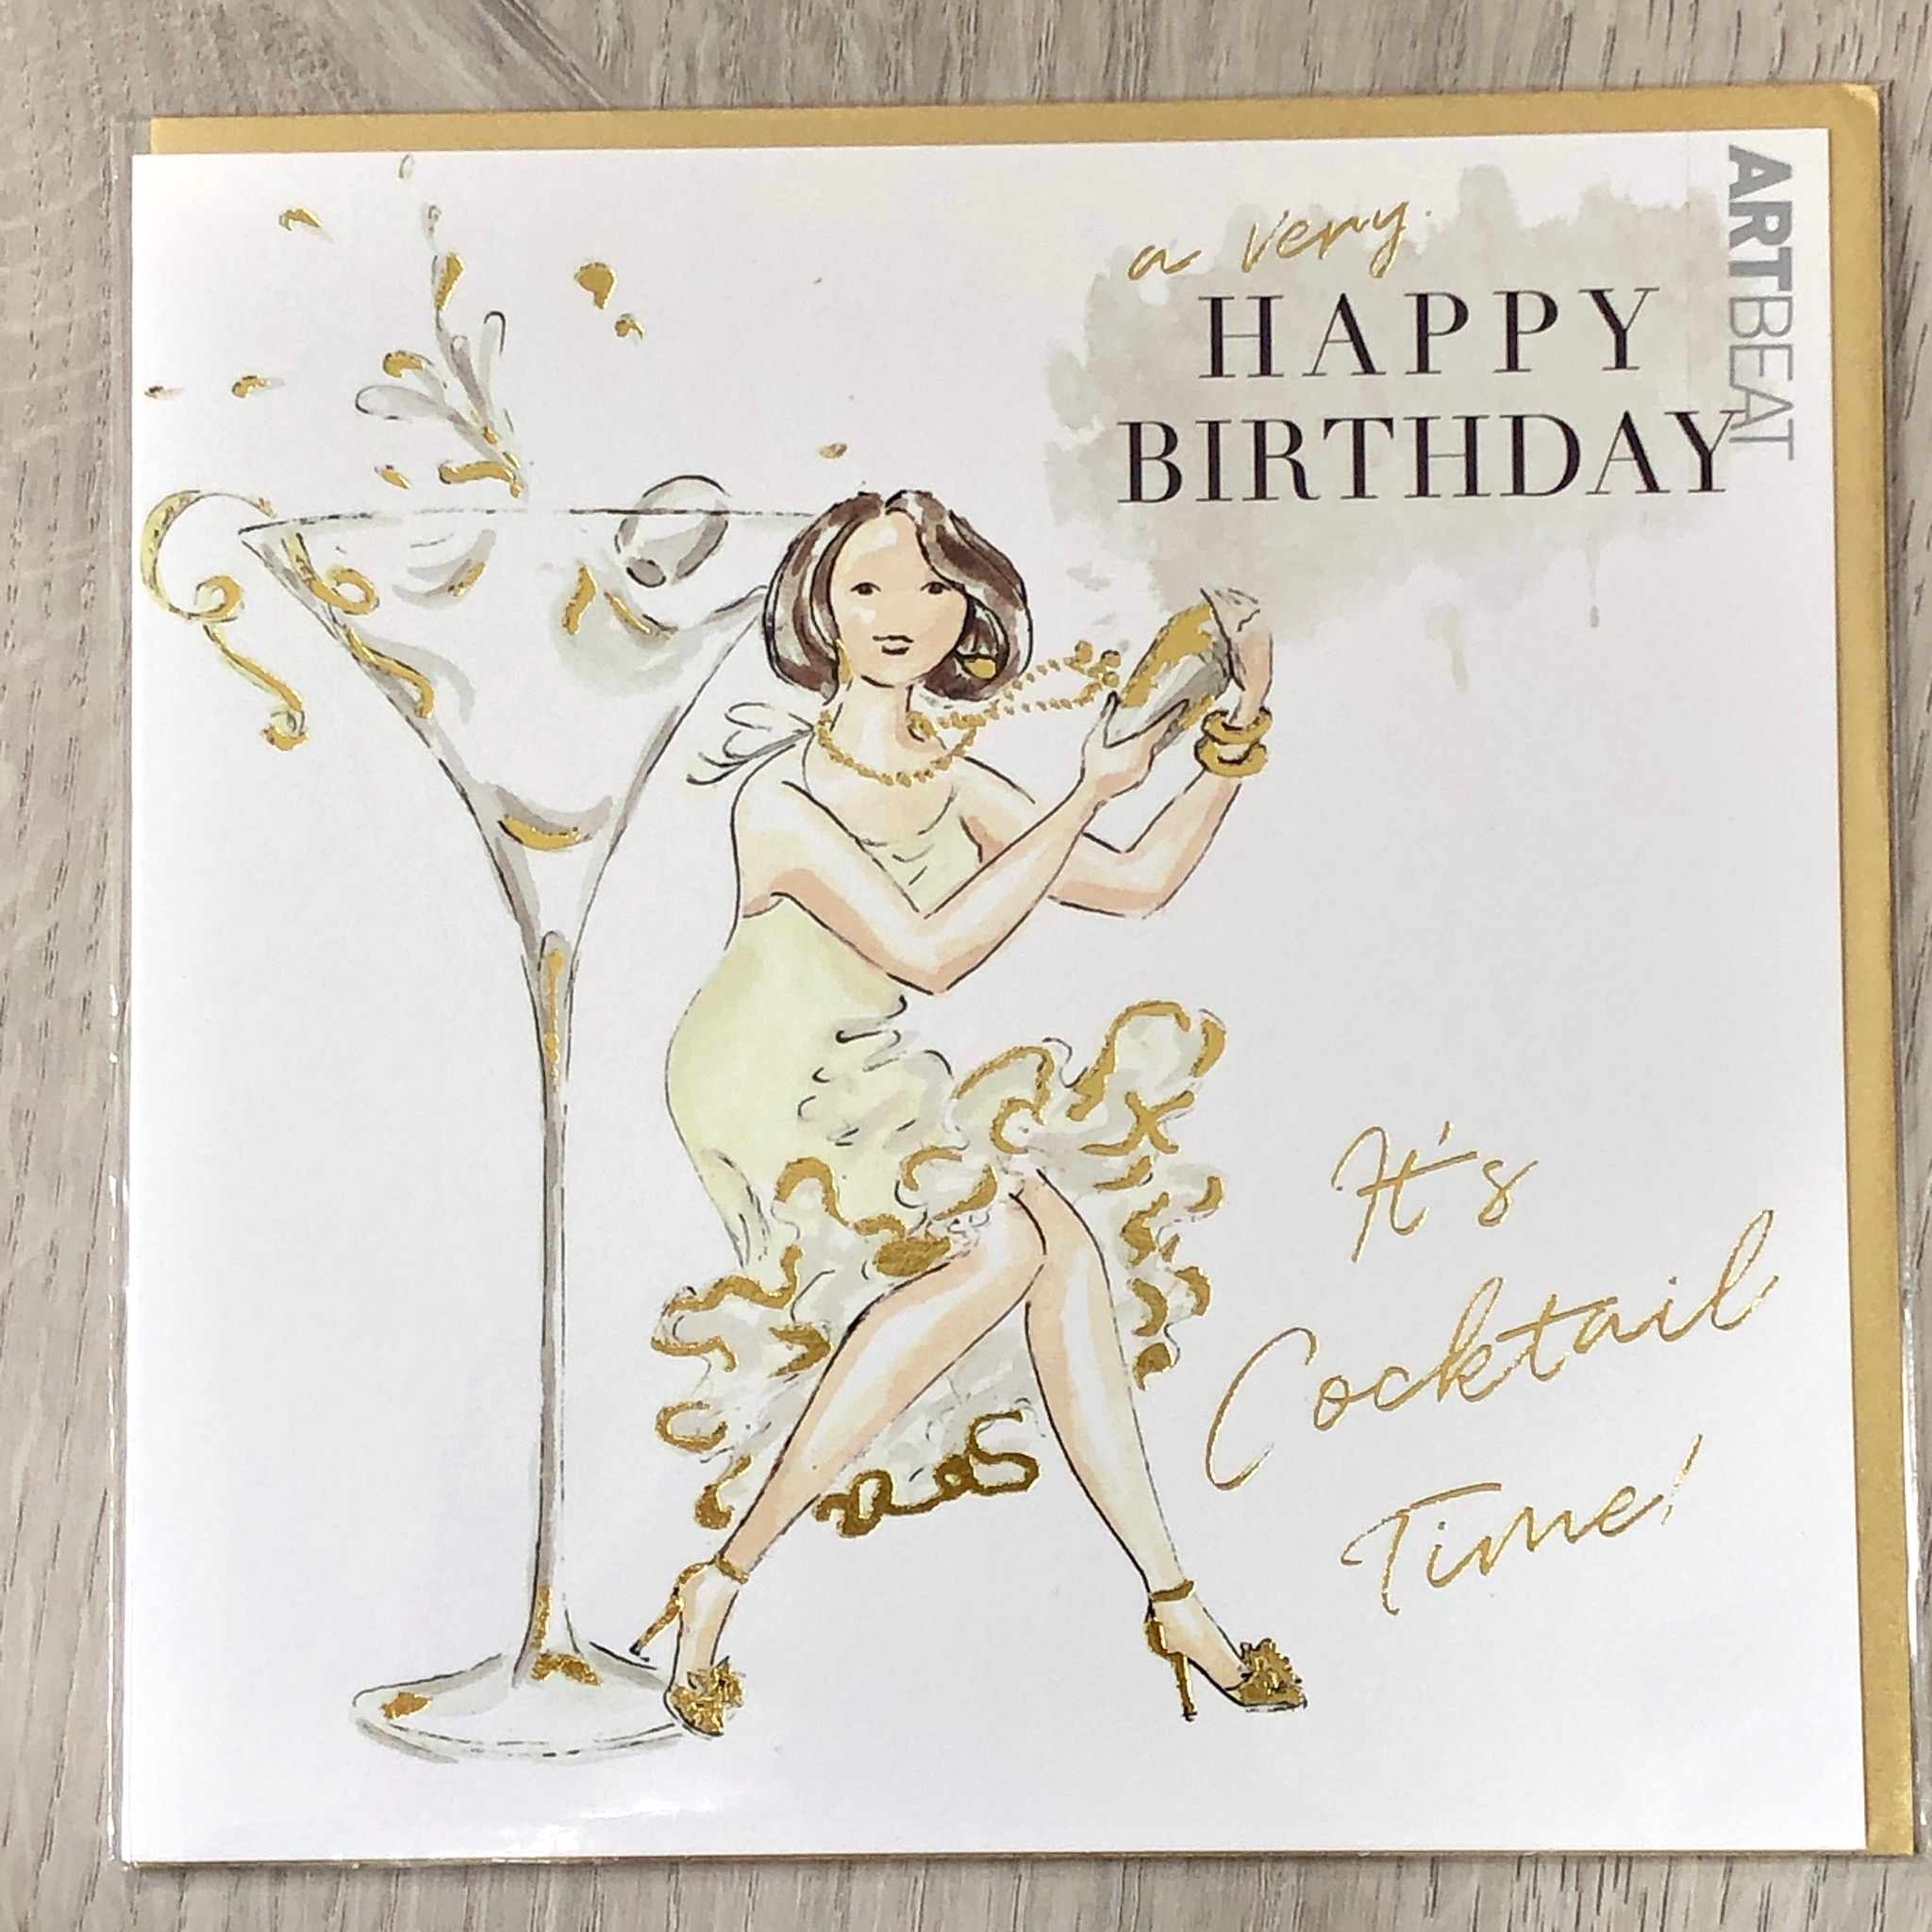 Birthday card- It's cocktail time!